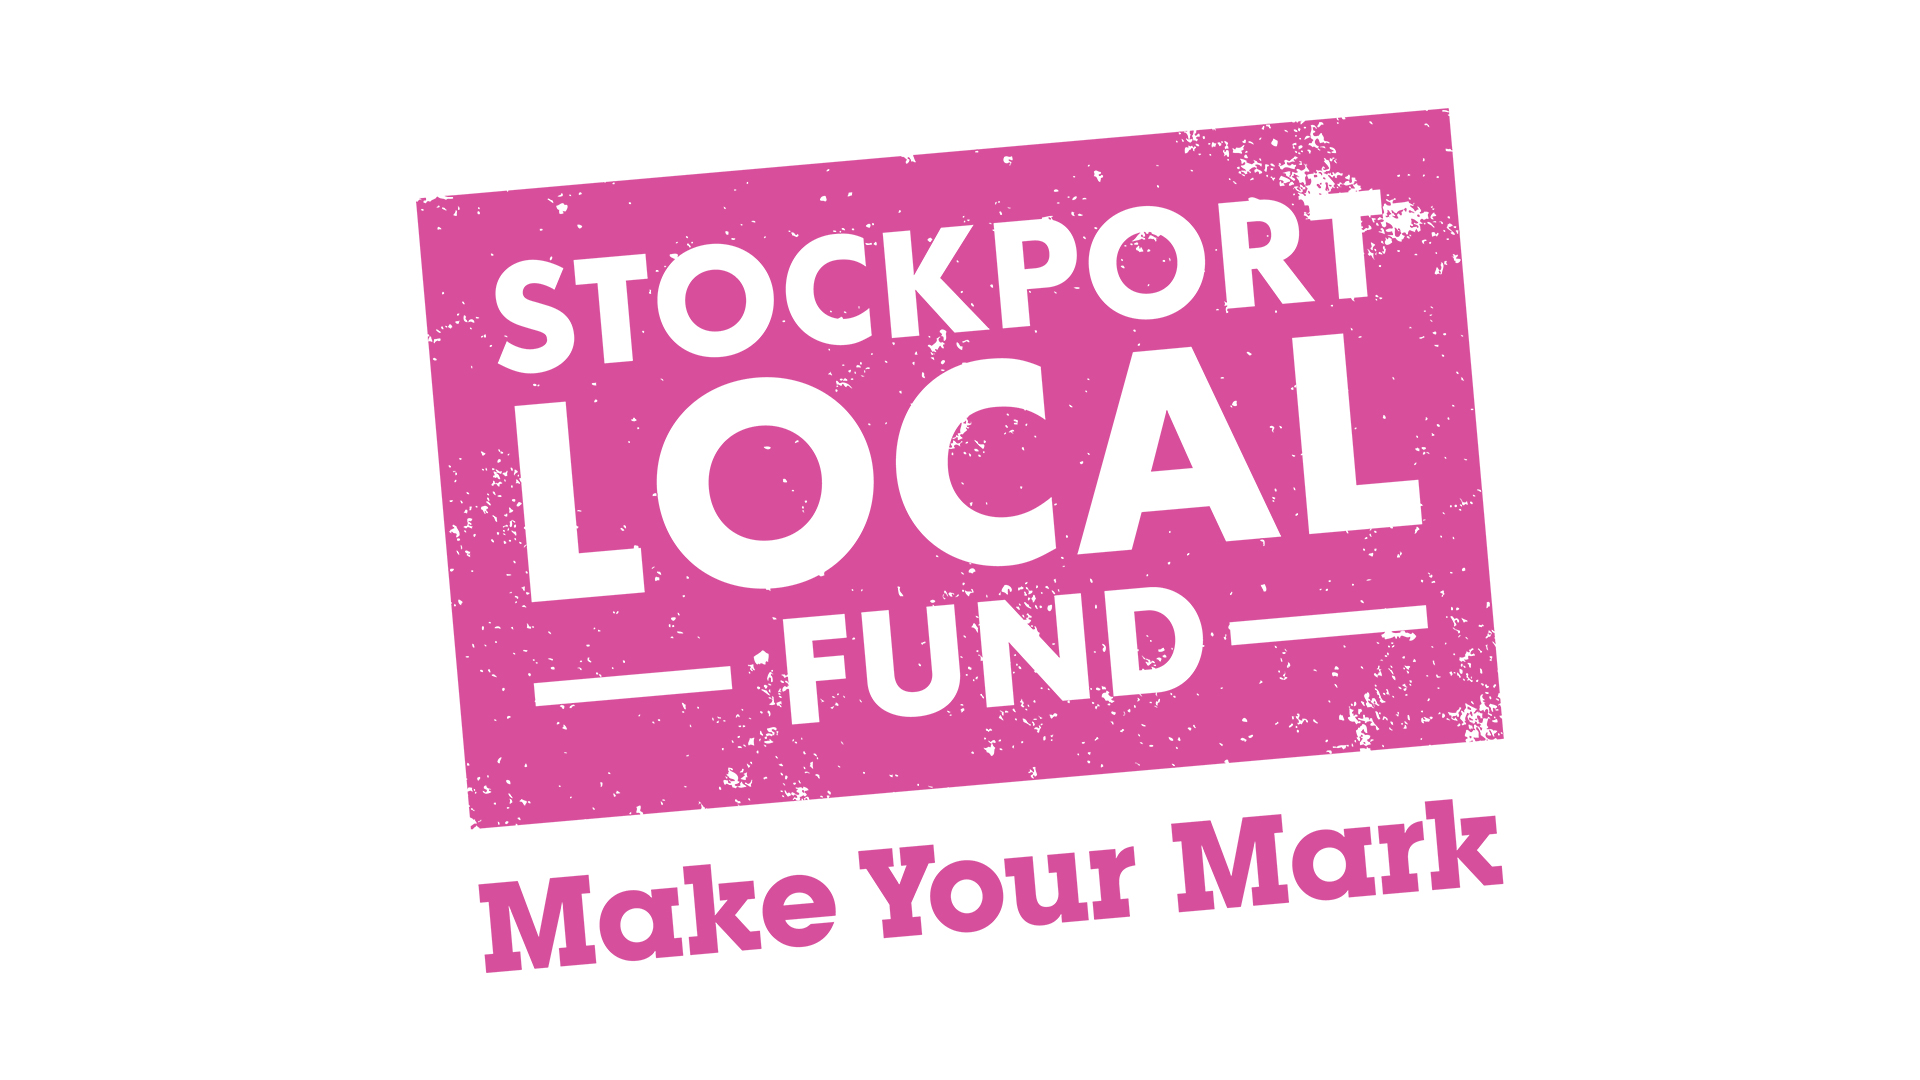 Stockport Local Fund is supporting more community projects